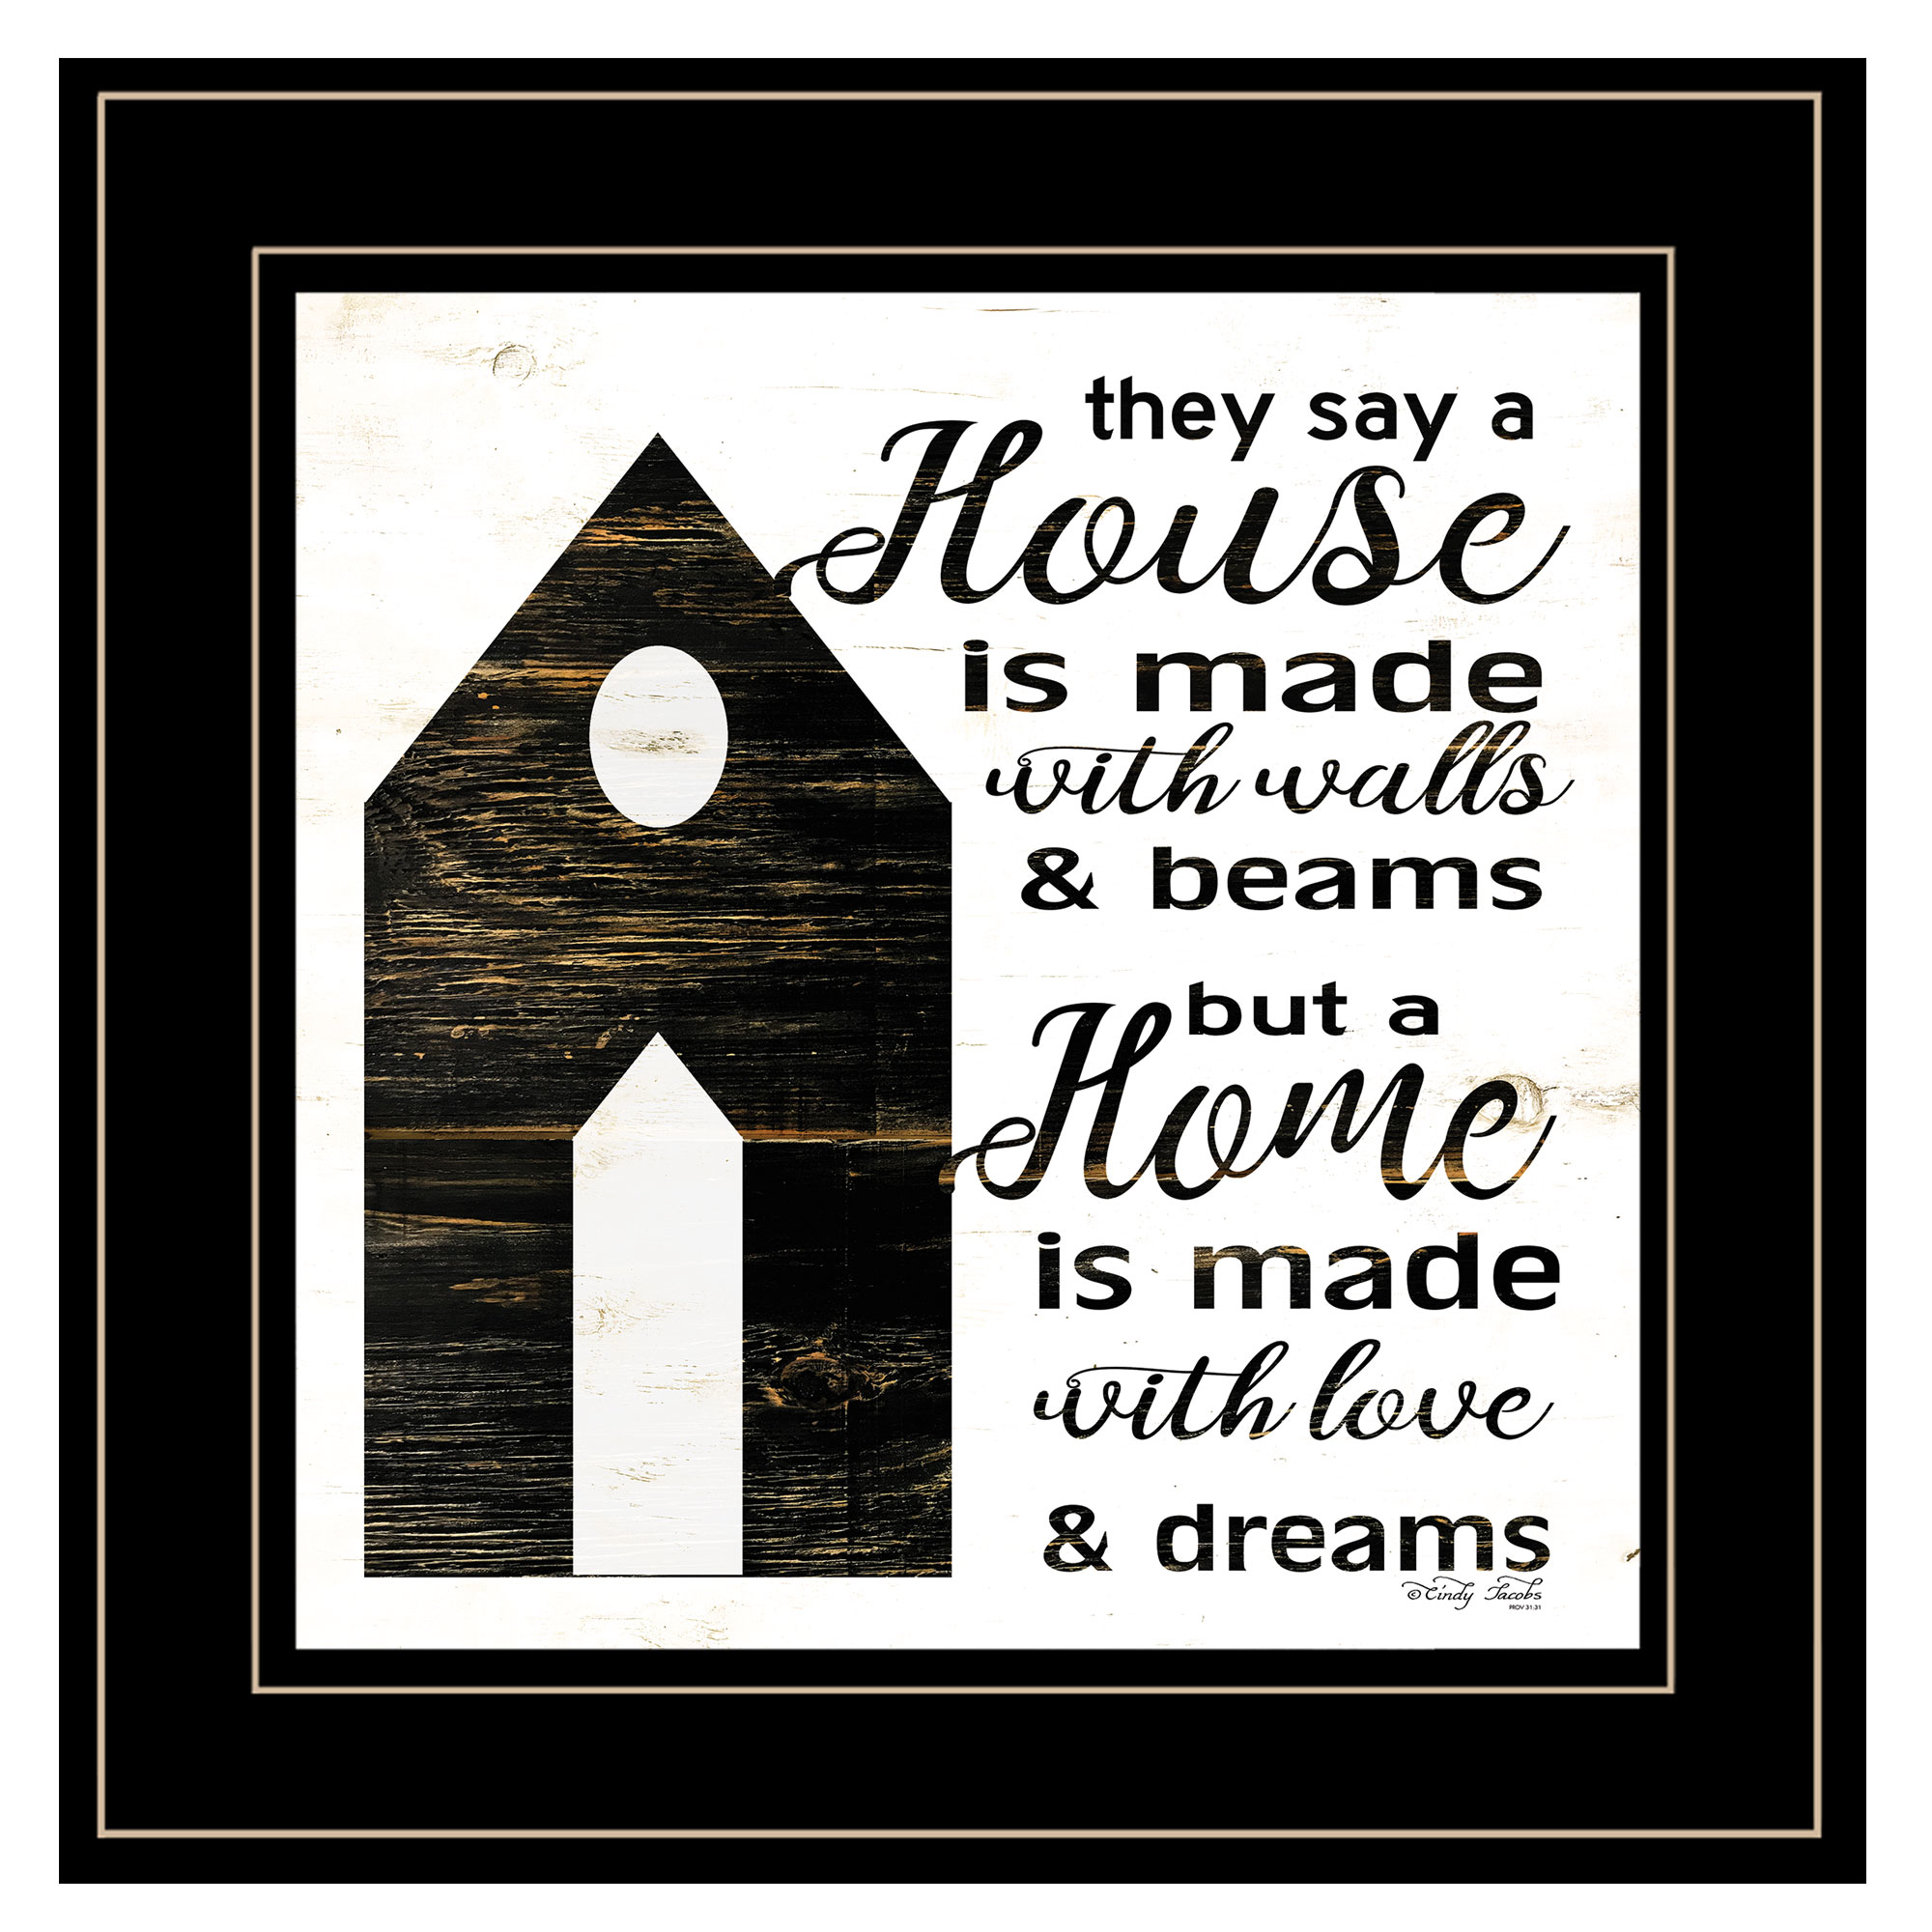 """A House"" a wooden salt box house by artist Cindy Jacobs. This decorative black framed print 15""x15"" of a salt box house with script warms any home. Script says a house is made of walls and beams but a Home is made of Love and dreams. Prints are UV coated (glass is not needed) and arrives ready to hang. Textured Artwork with a 'rolled on' acid-free acrylic coating to create a canvas painting effect. UV Protectant Coating protects artwork from fading. No glass is necessary. Moulding adds natural beauty to the framed art. Frame is keyholed for the easy hanging. This Fine Home Decor piece made in the USA by Woman Owned Business (Wbe) is a perfect gift??for a friend or relative."